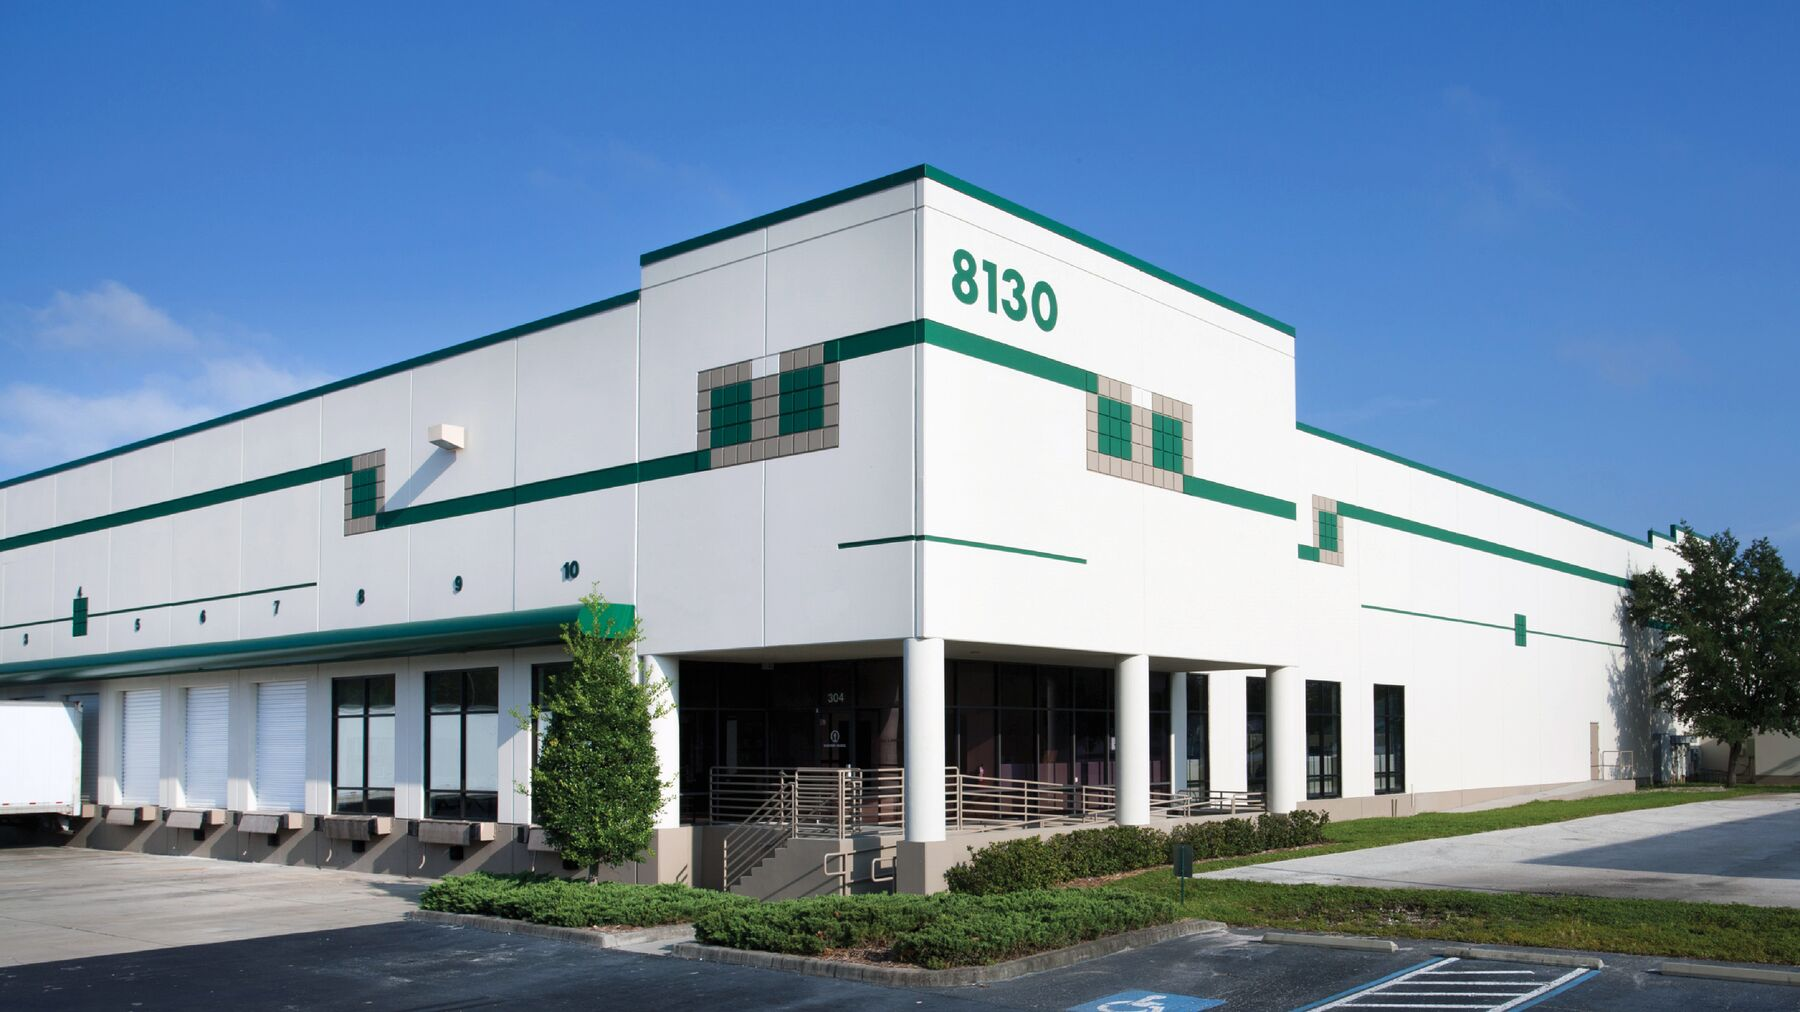 DPM-Prologis-Tampa_8130-Anderson-Road.jpg